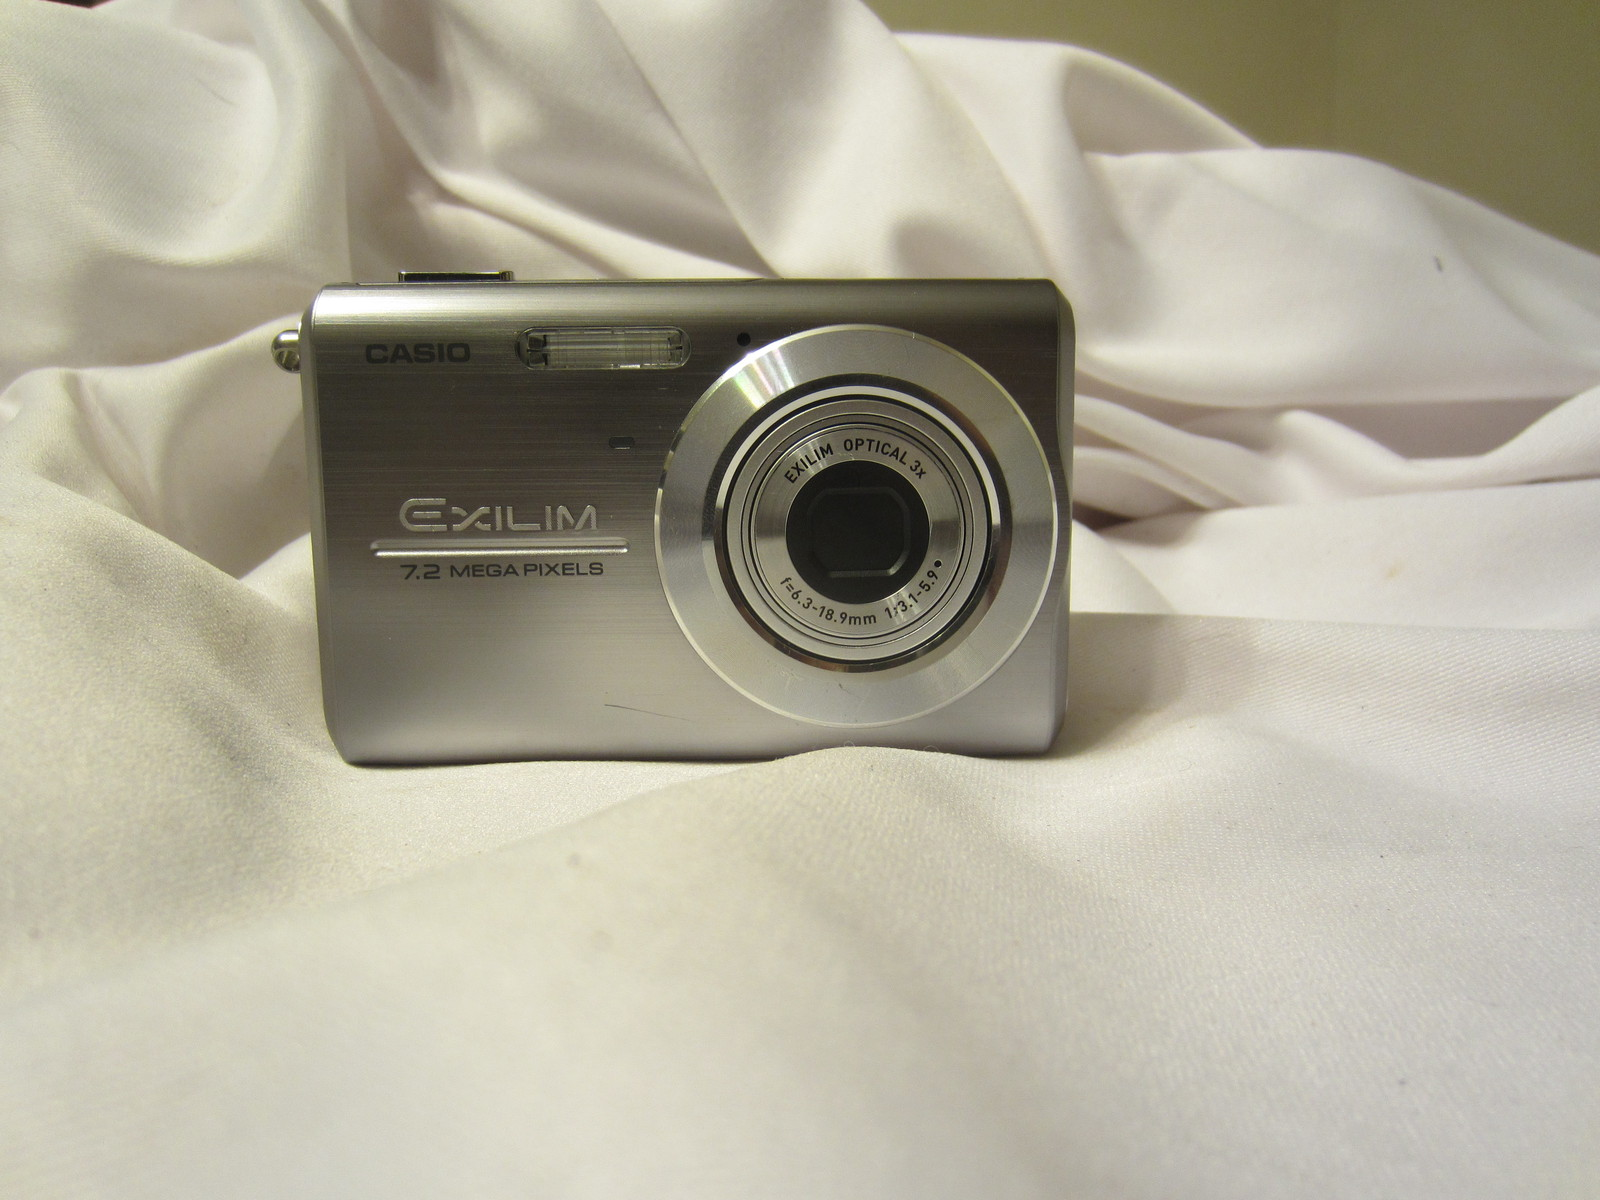 Primary image for Casio Exilim EX-Z75 7.2MP Digital Camera w/ 3x Anti Shake Optical Zoom (Silver)